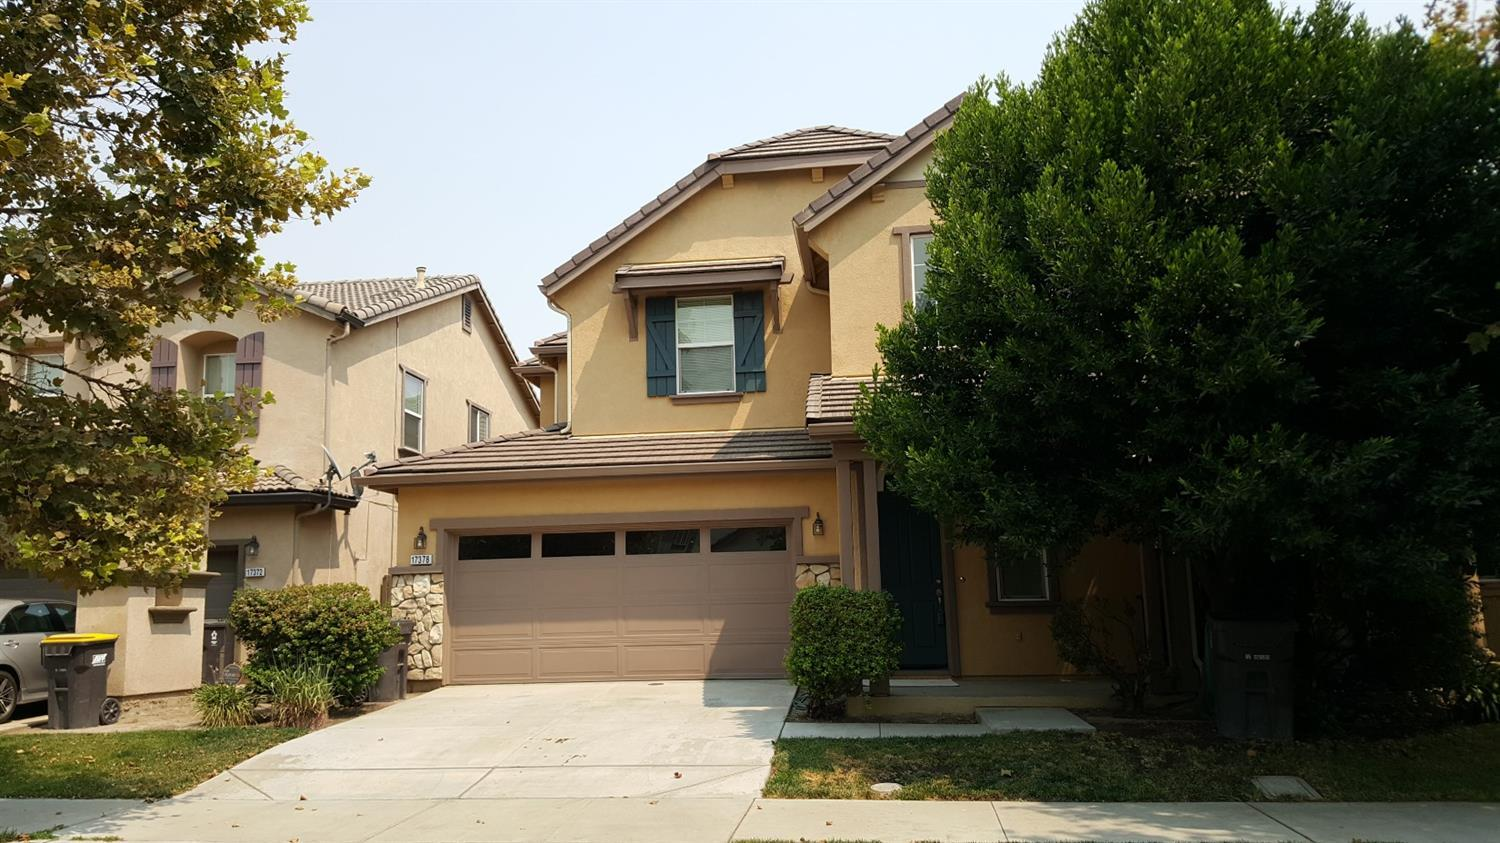 Homes for Sale in Lathrop CA — Lathrop Real Estate — ZipRealty